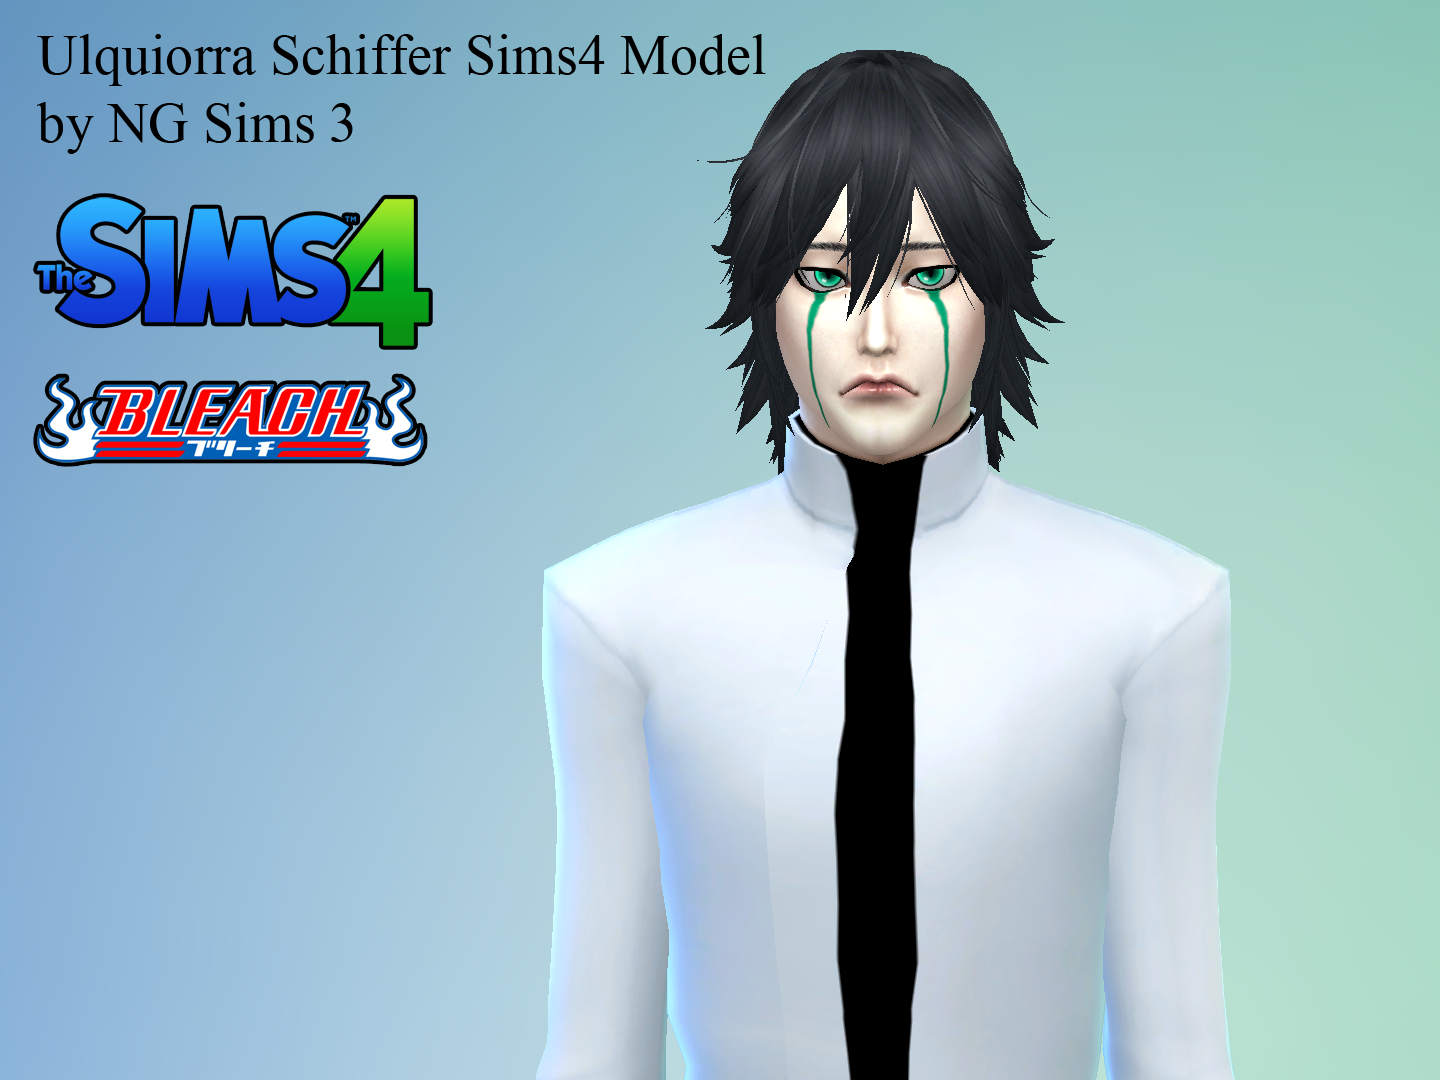 Sims 4 Anime Characters : Ng sims ulquiorra schiffer ts anime model